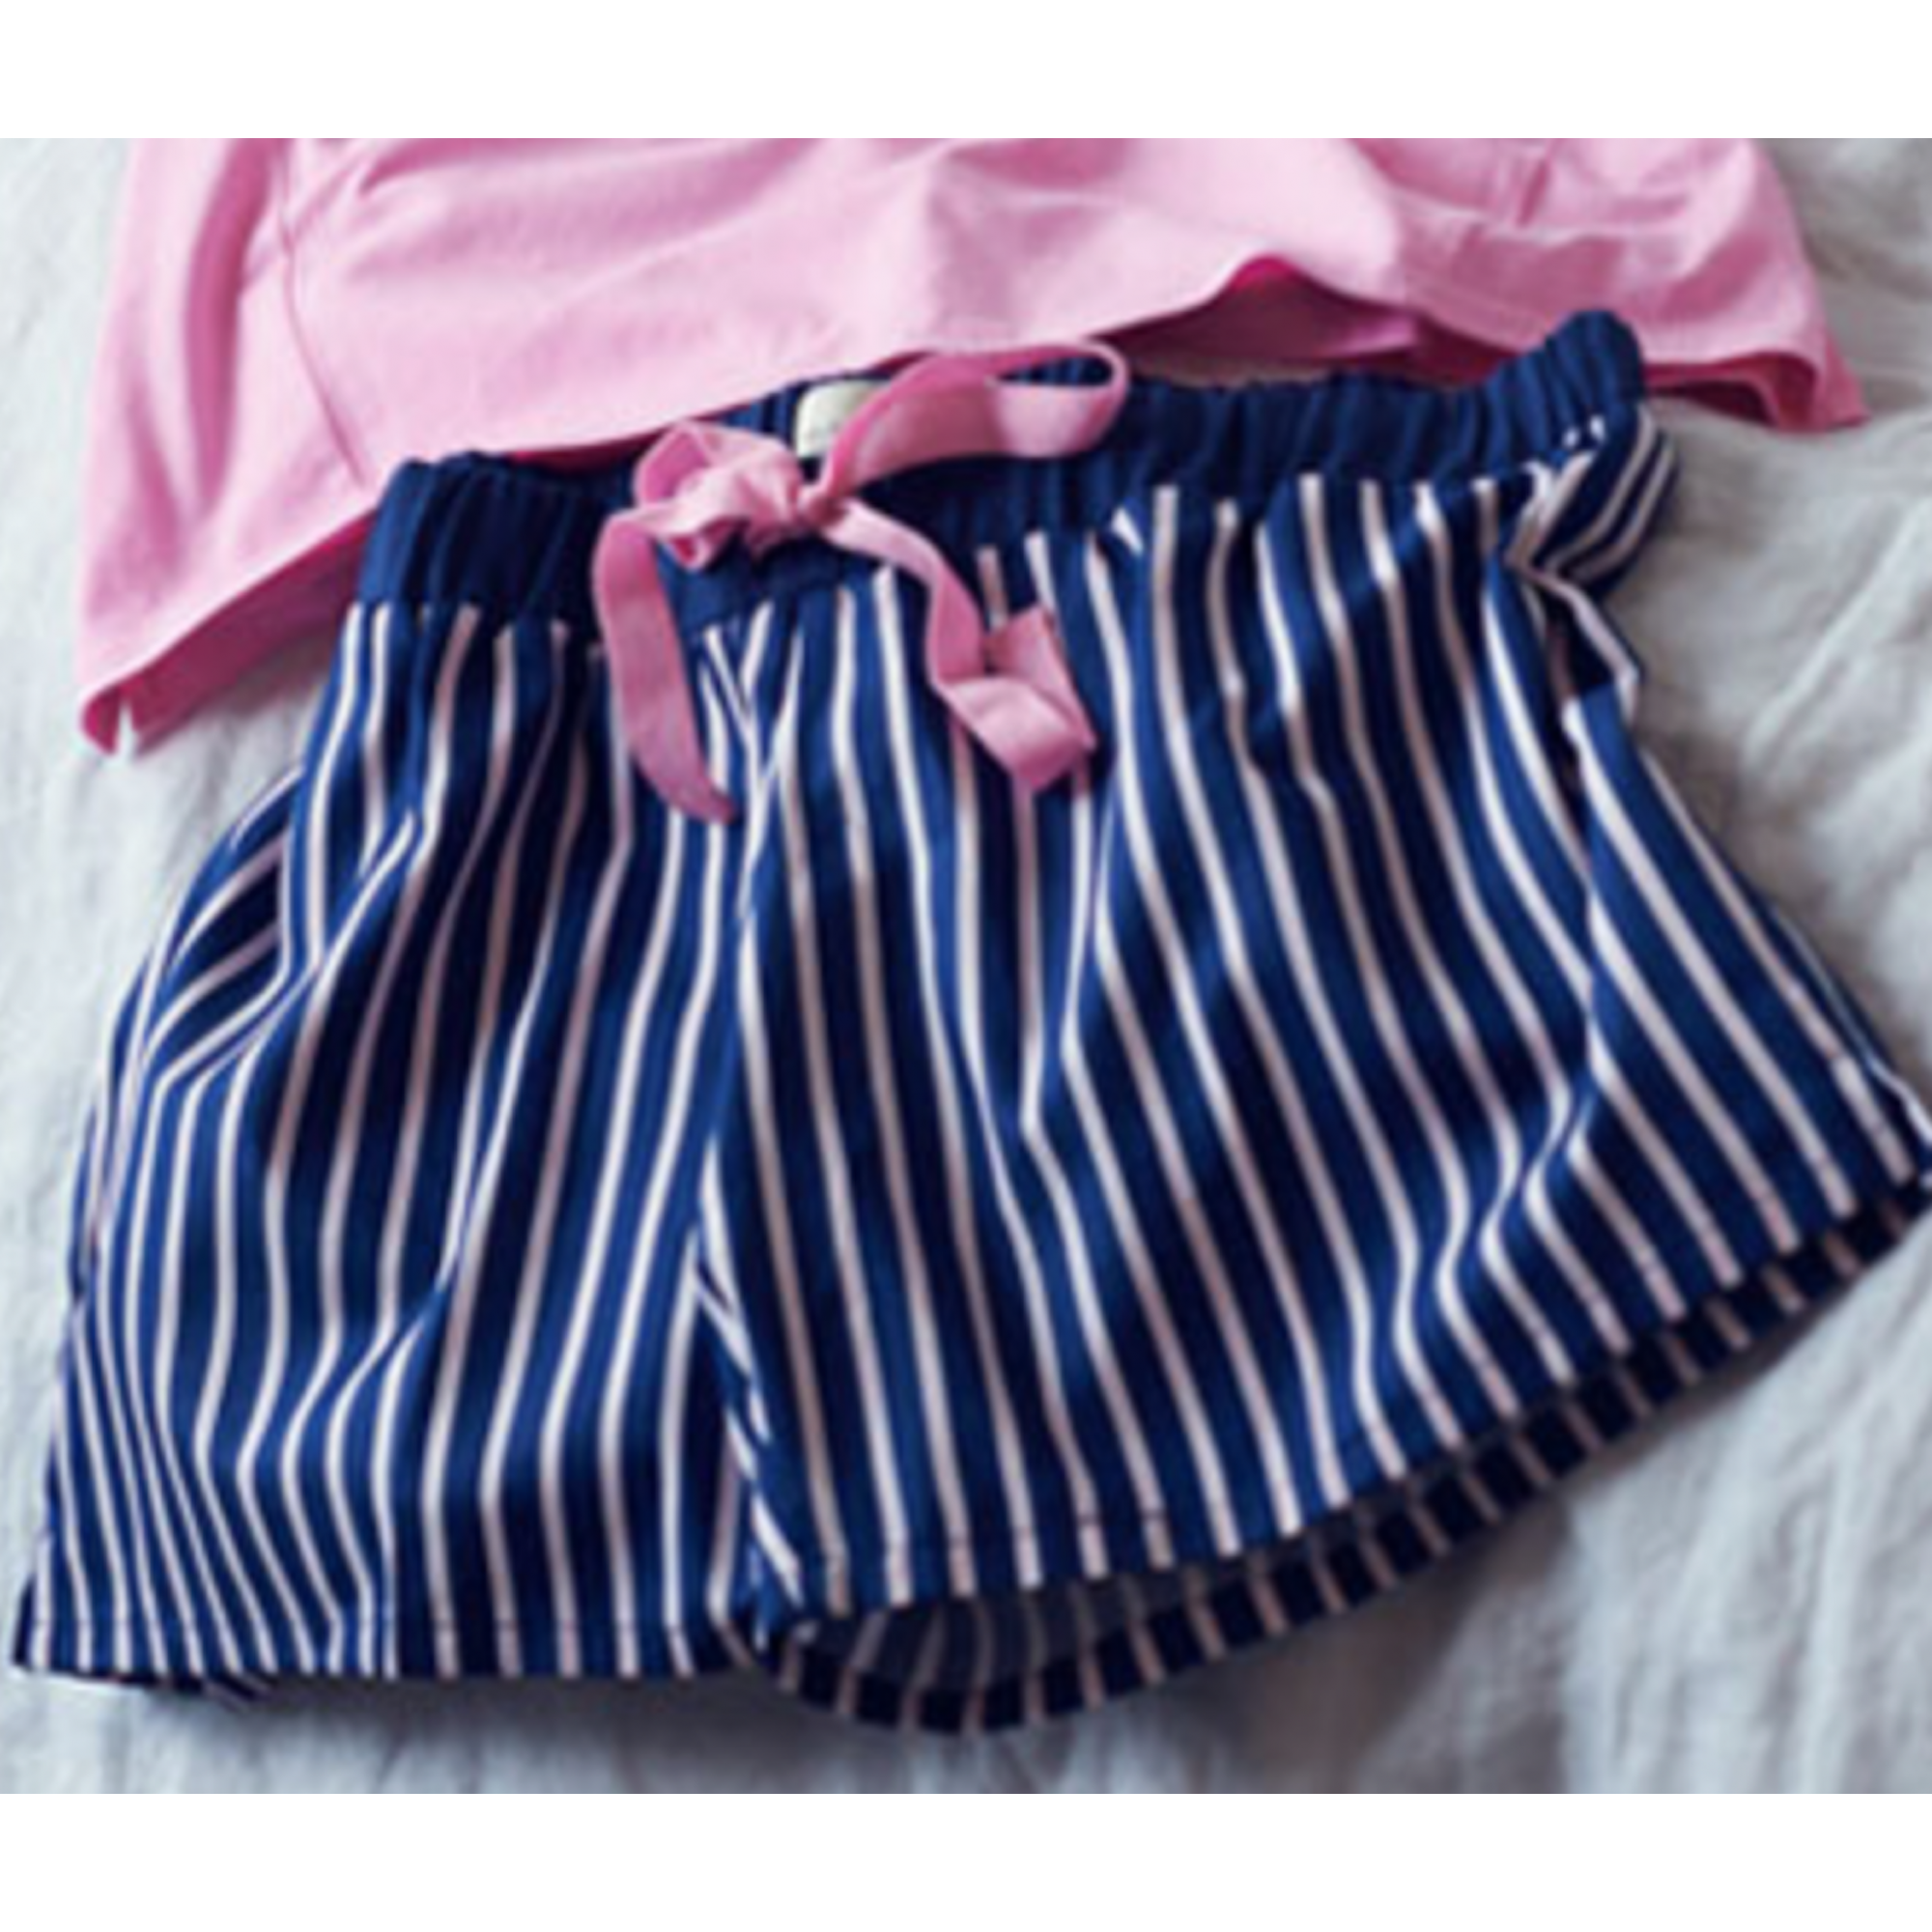 3abae6e2fa Alanis Pencil Stripe Shorts Navy Pink - For Her... from The Luxe ...